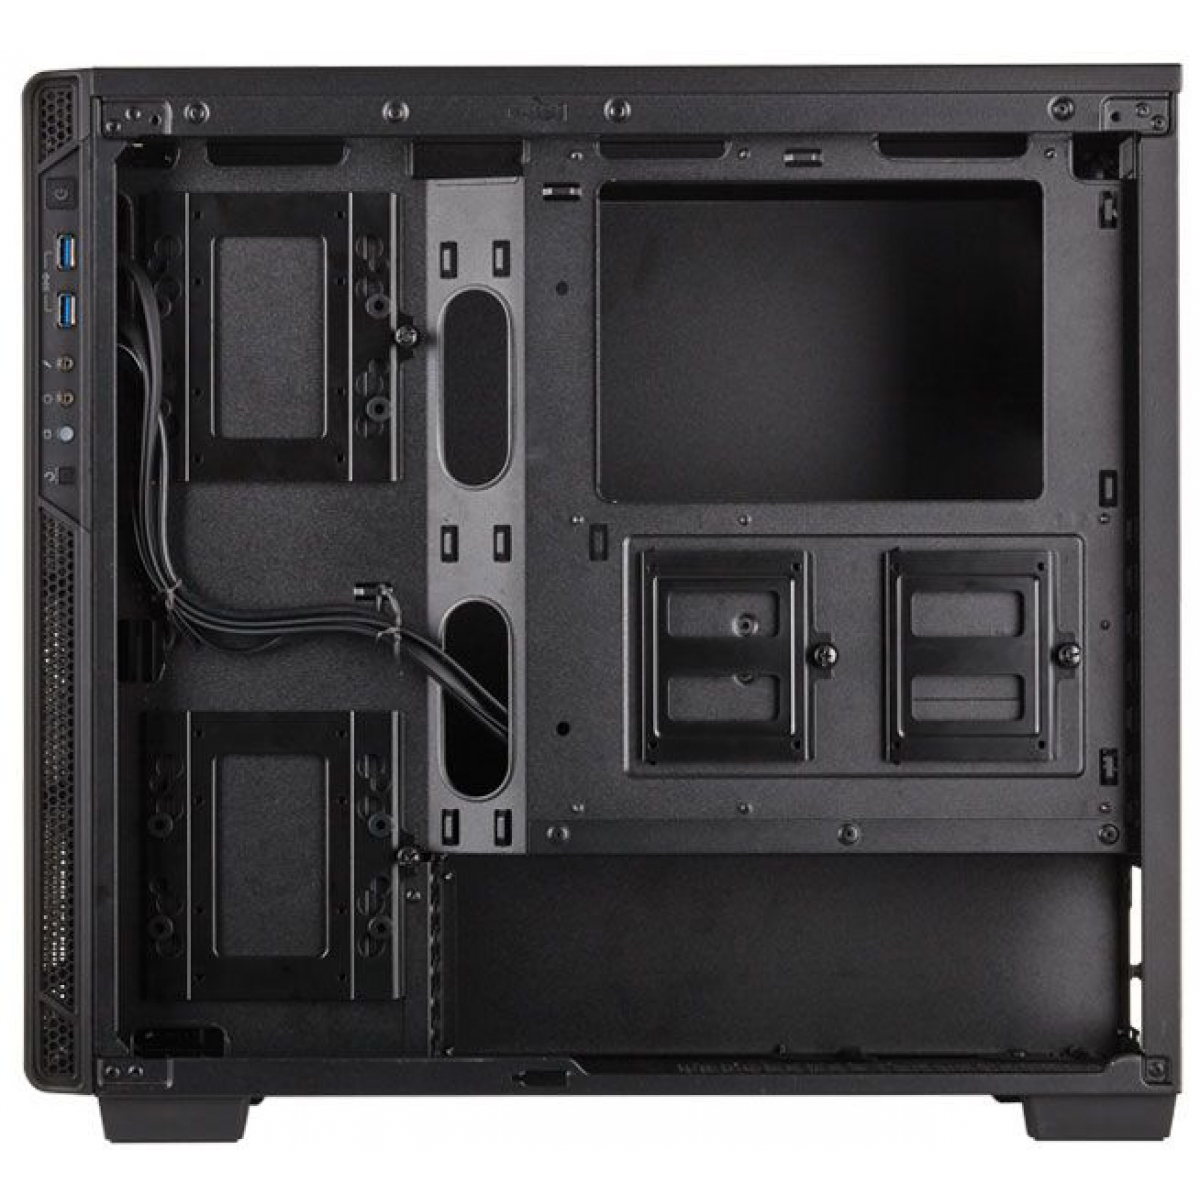 Gabinete Gamer Corsair Carbide 270R, Mid Tower, Com 2 Fans, Lateral em Acrílico, Black, S-Fonte, CC-9011105-WW